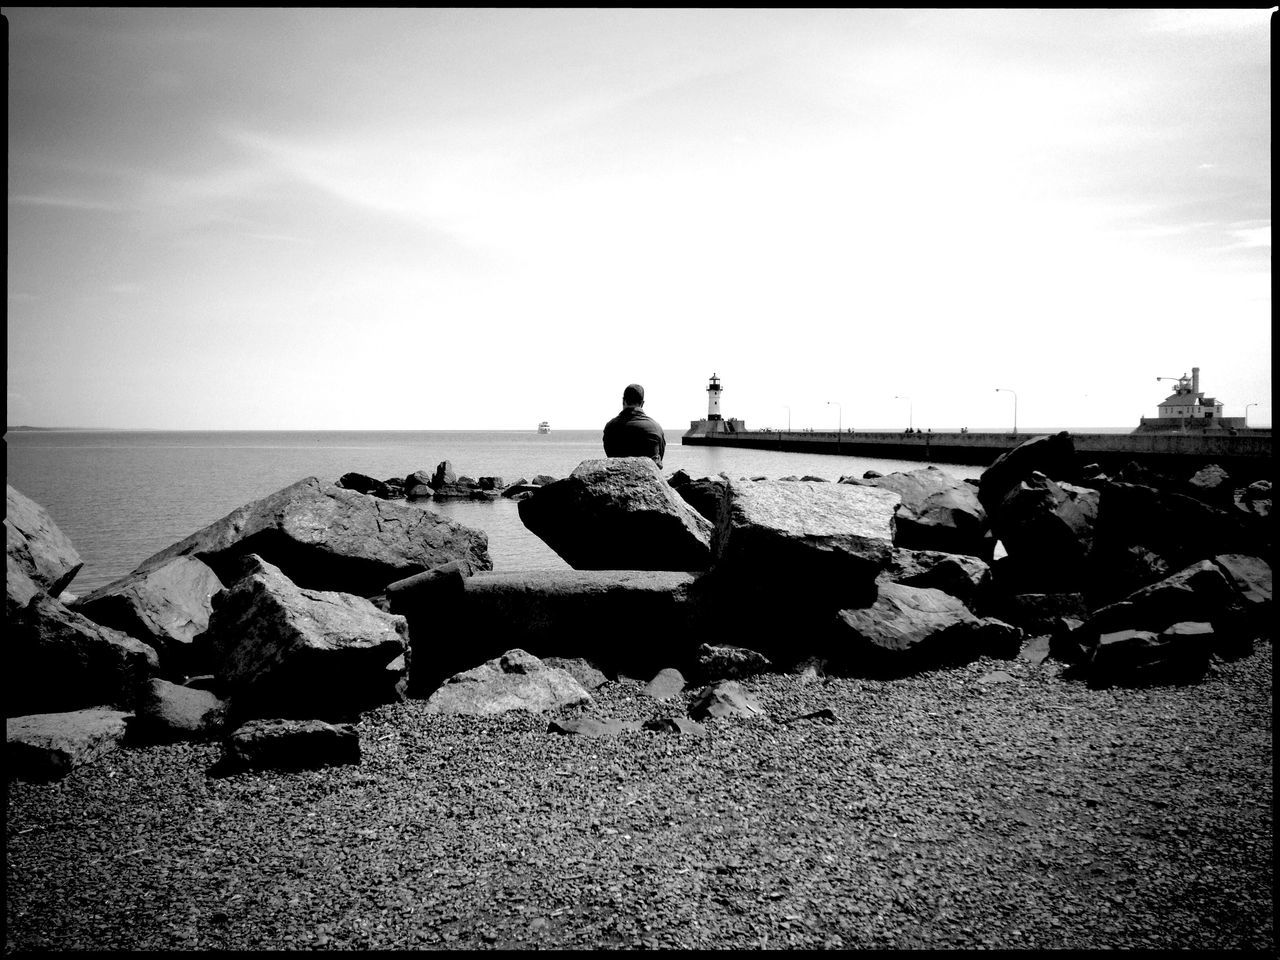 Rear View Of Man By Rocks At Sea Shore Against Sky